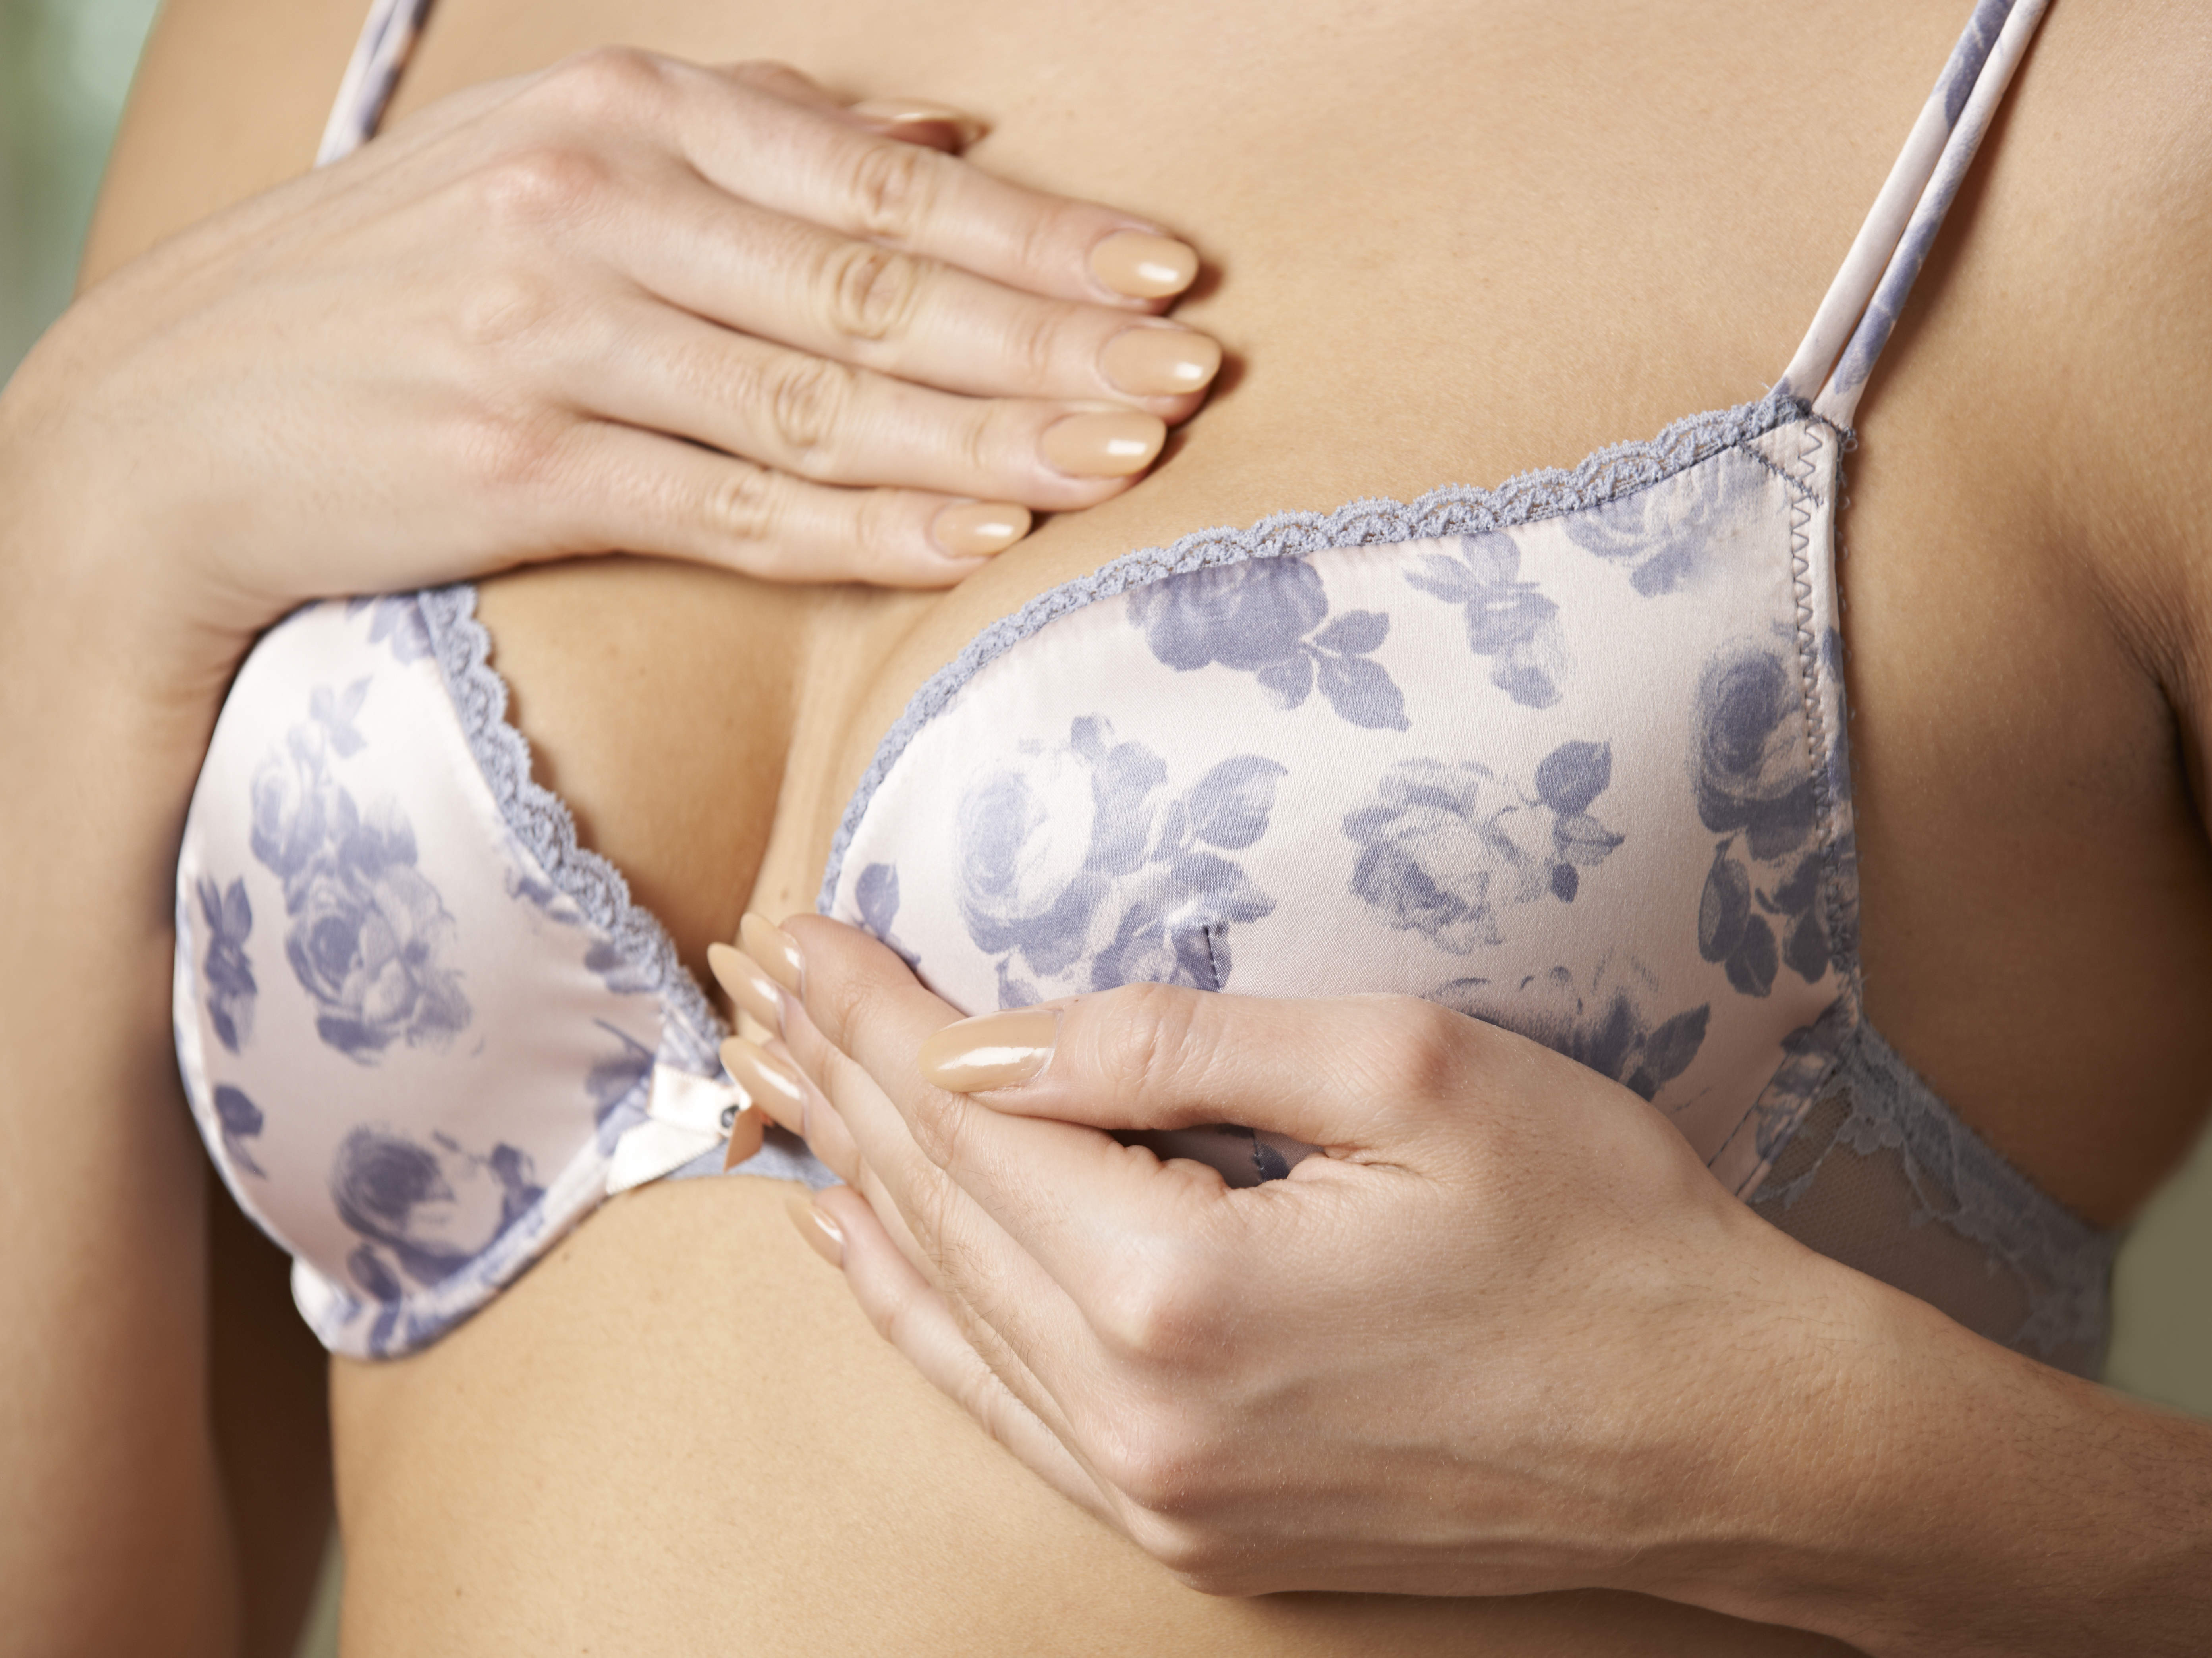 80c135c7b10 Lump in Your Breast  6 Causes That Aren t Breast Cancer - Health